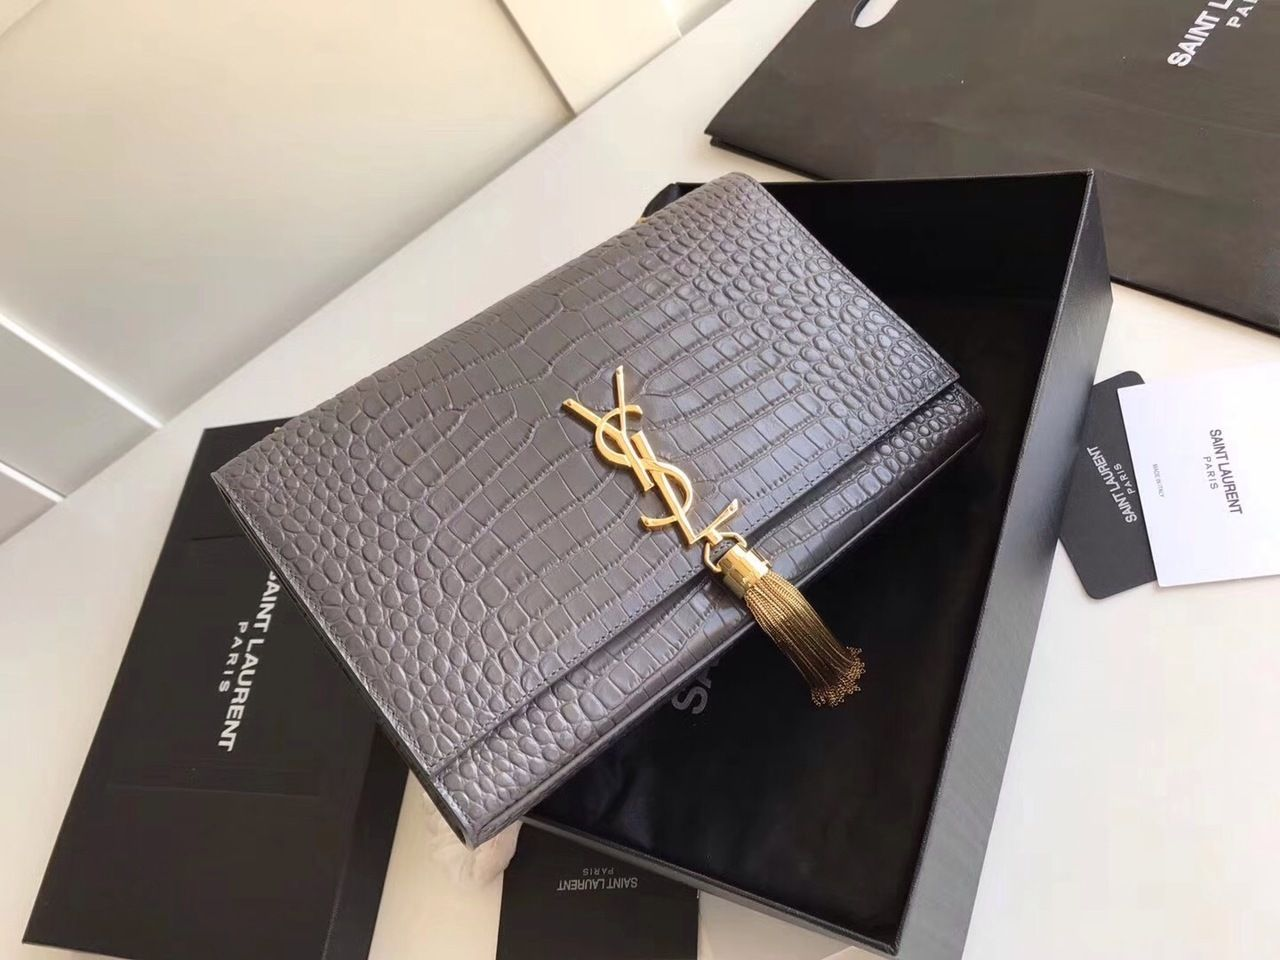 3f9d80d305a1 Saint Laurent CLASSIC MEDIUM KATE TASSEL SATCHEL IN GREY CROCODILE EMBOSSED  SHINY LEATHER WITH GOLD HARDWARE - Bella Vita Moda #ysl bag #ysllover ...